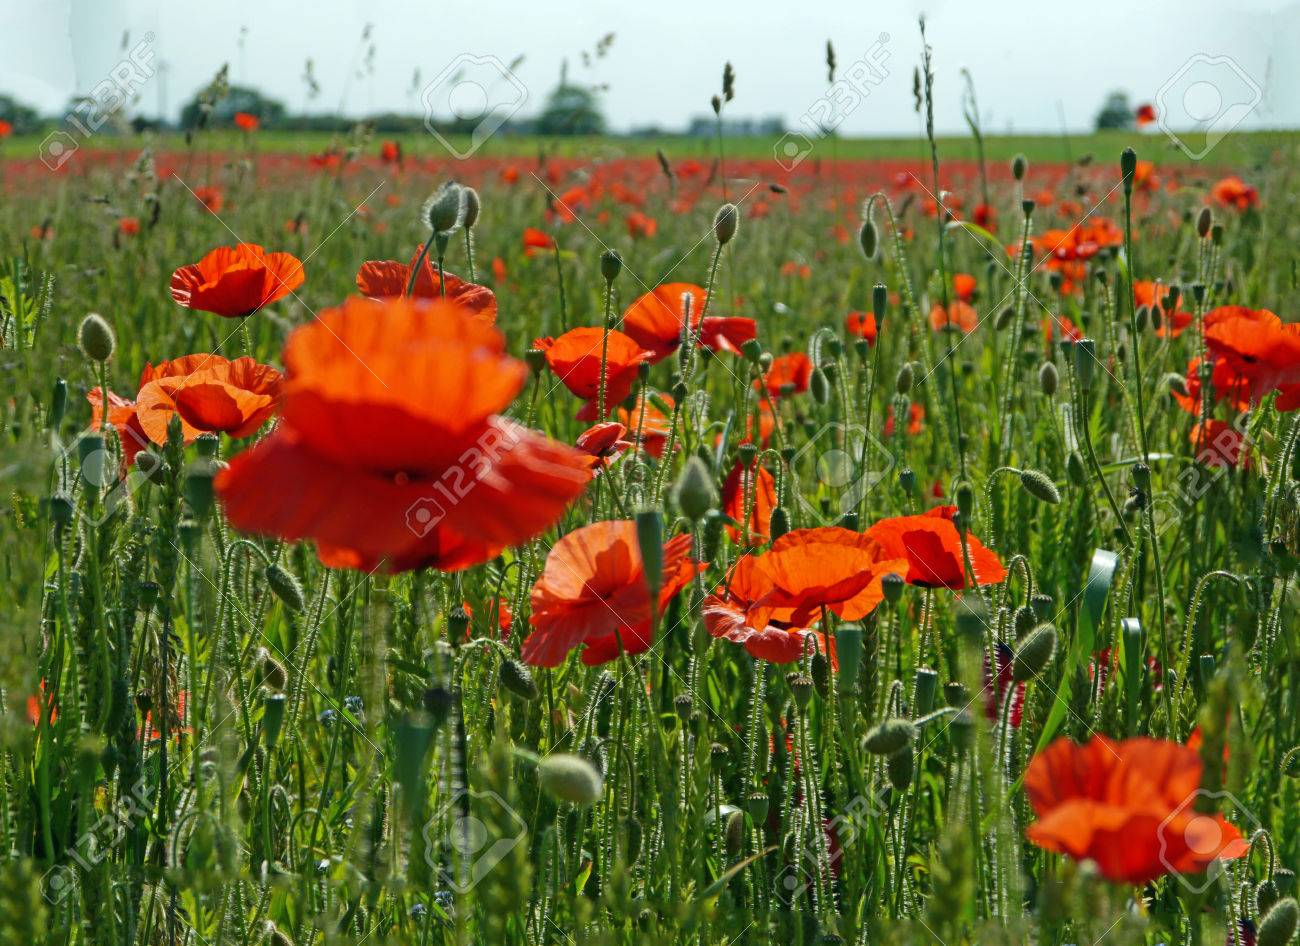 A meadow full of poppies and grasses in rural English countryside Standard-Bild - 81912962